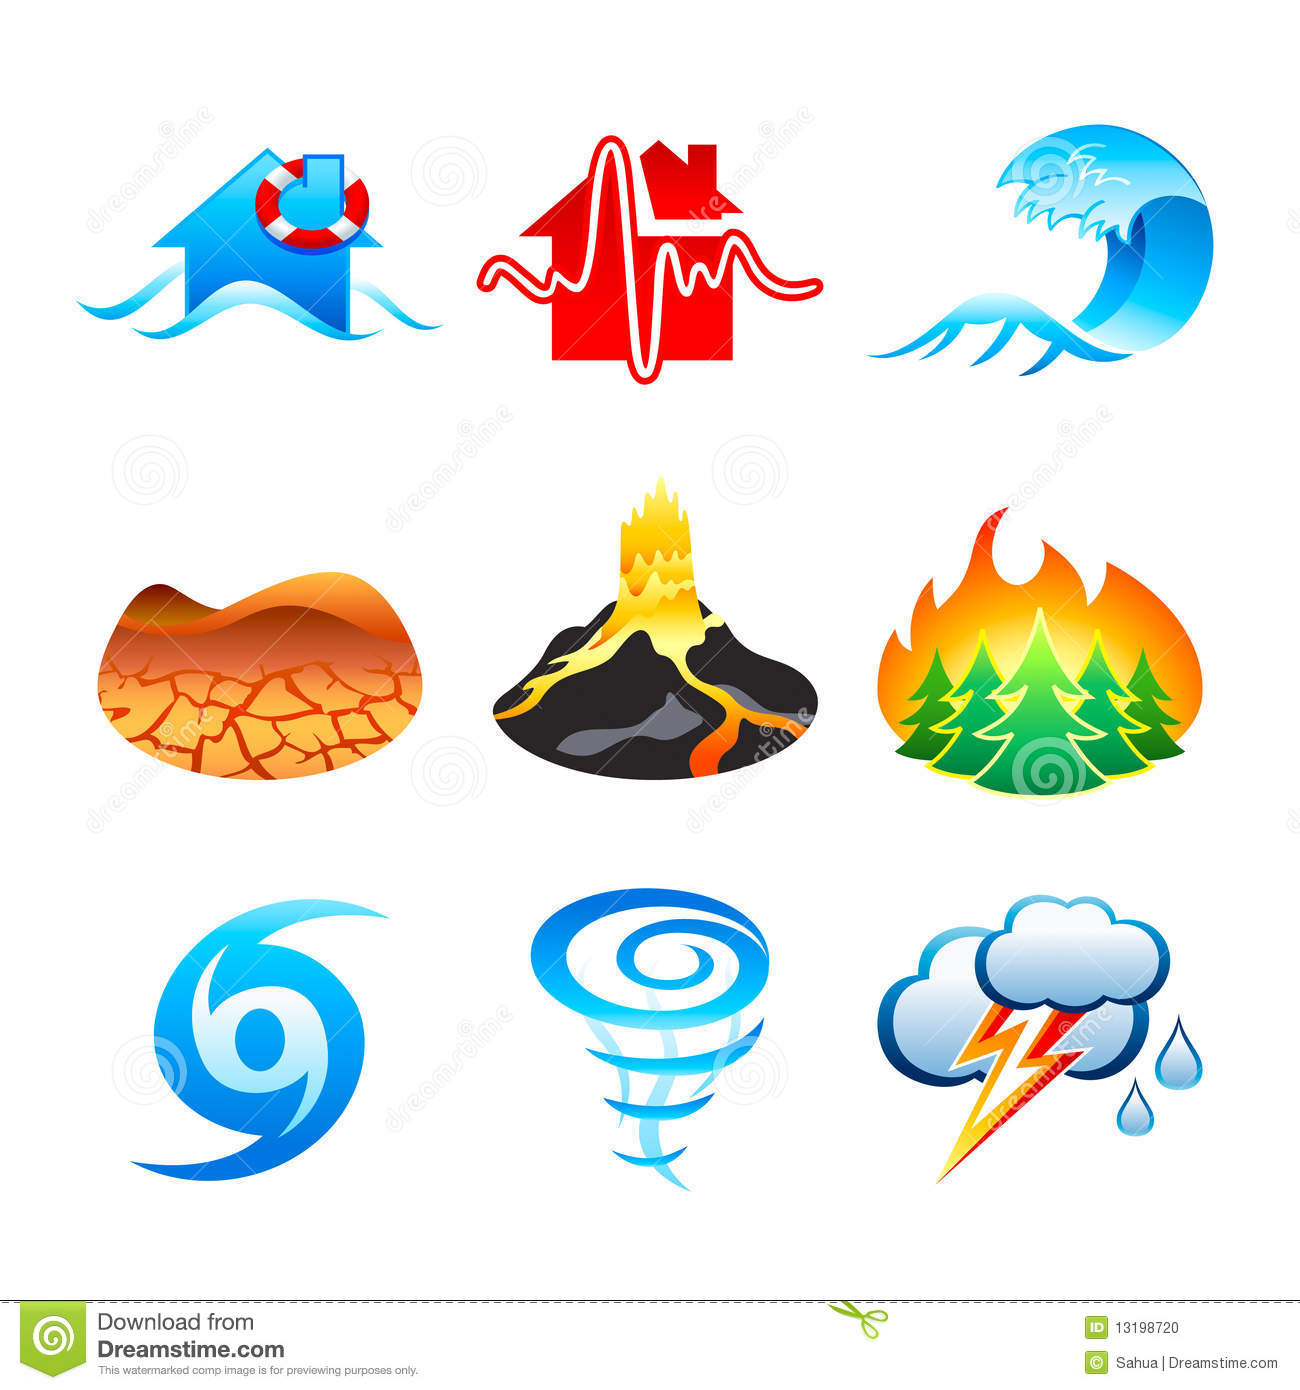 ... eruption, forest fire, hurricane, tornado and thunderstorm icons